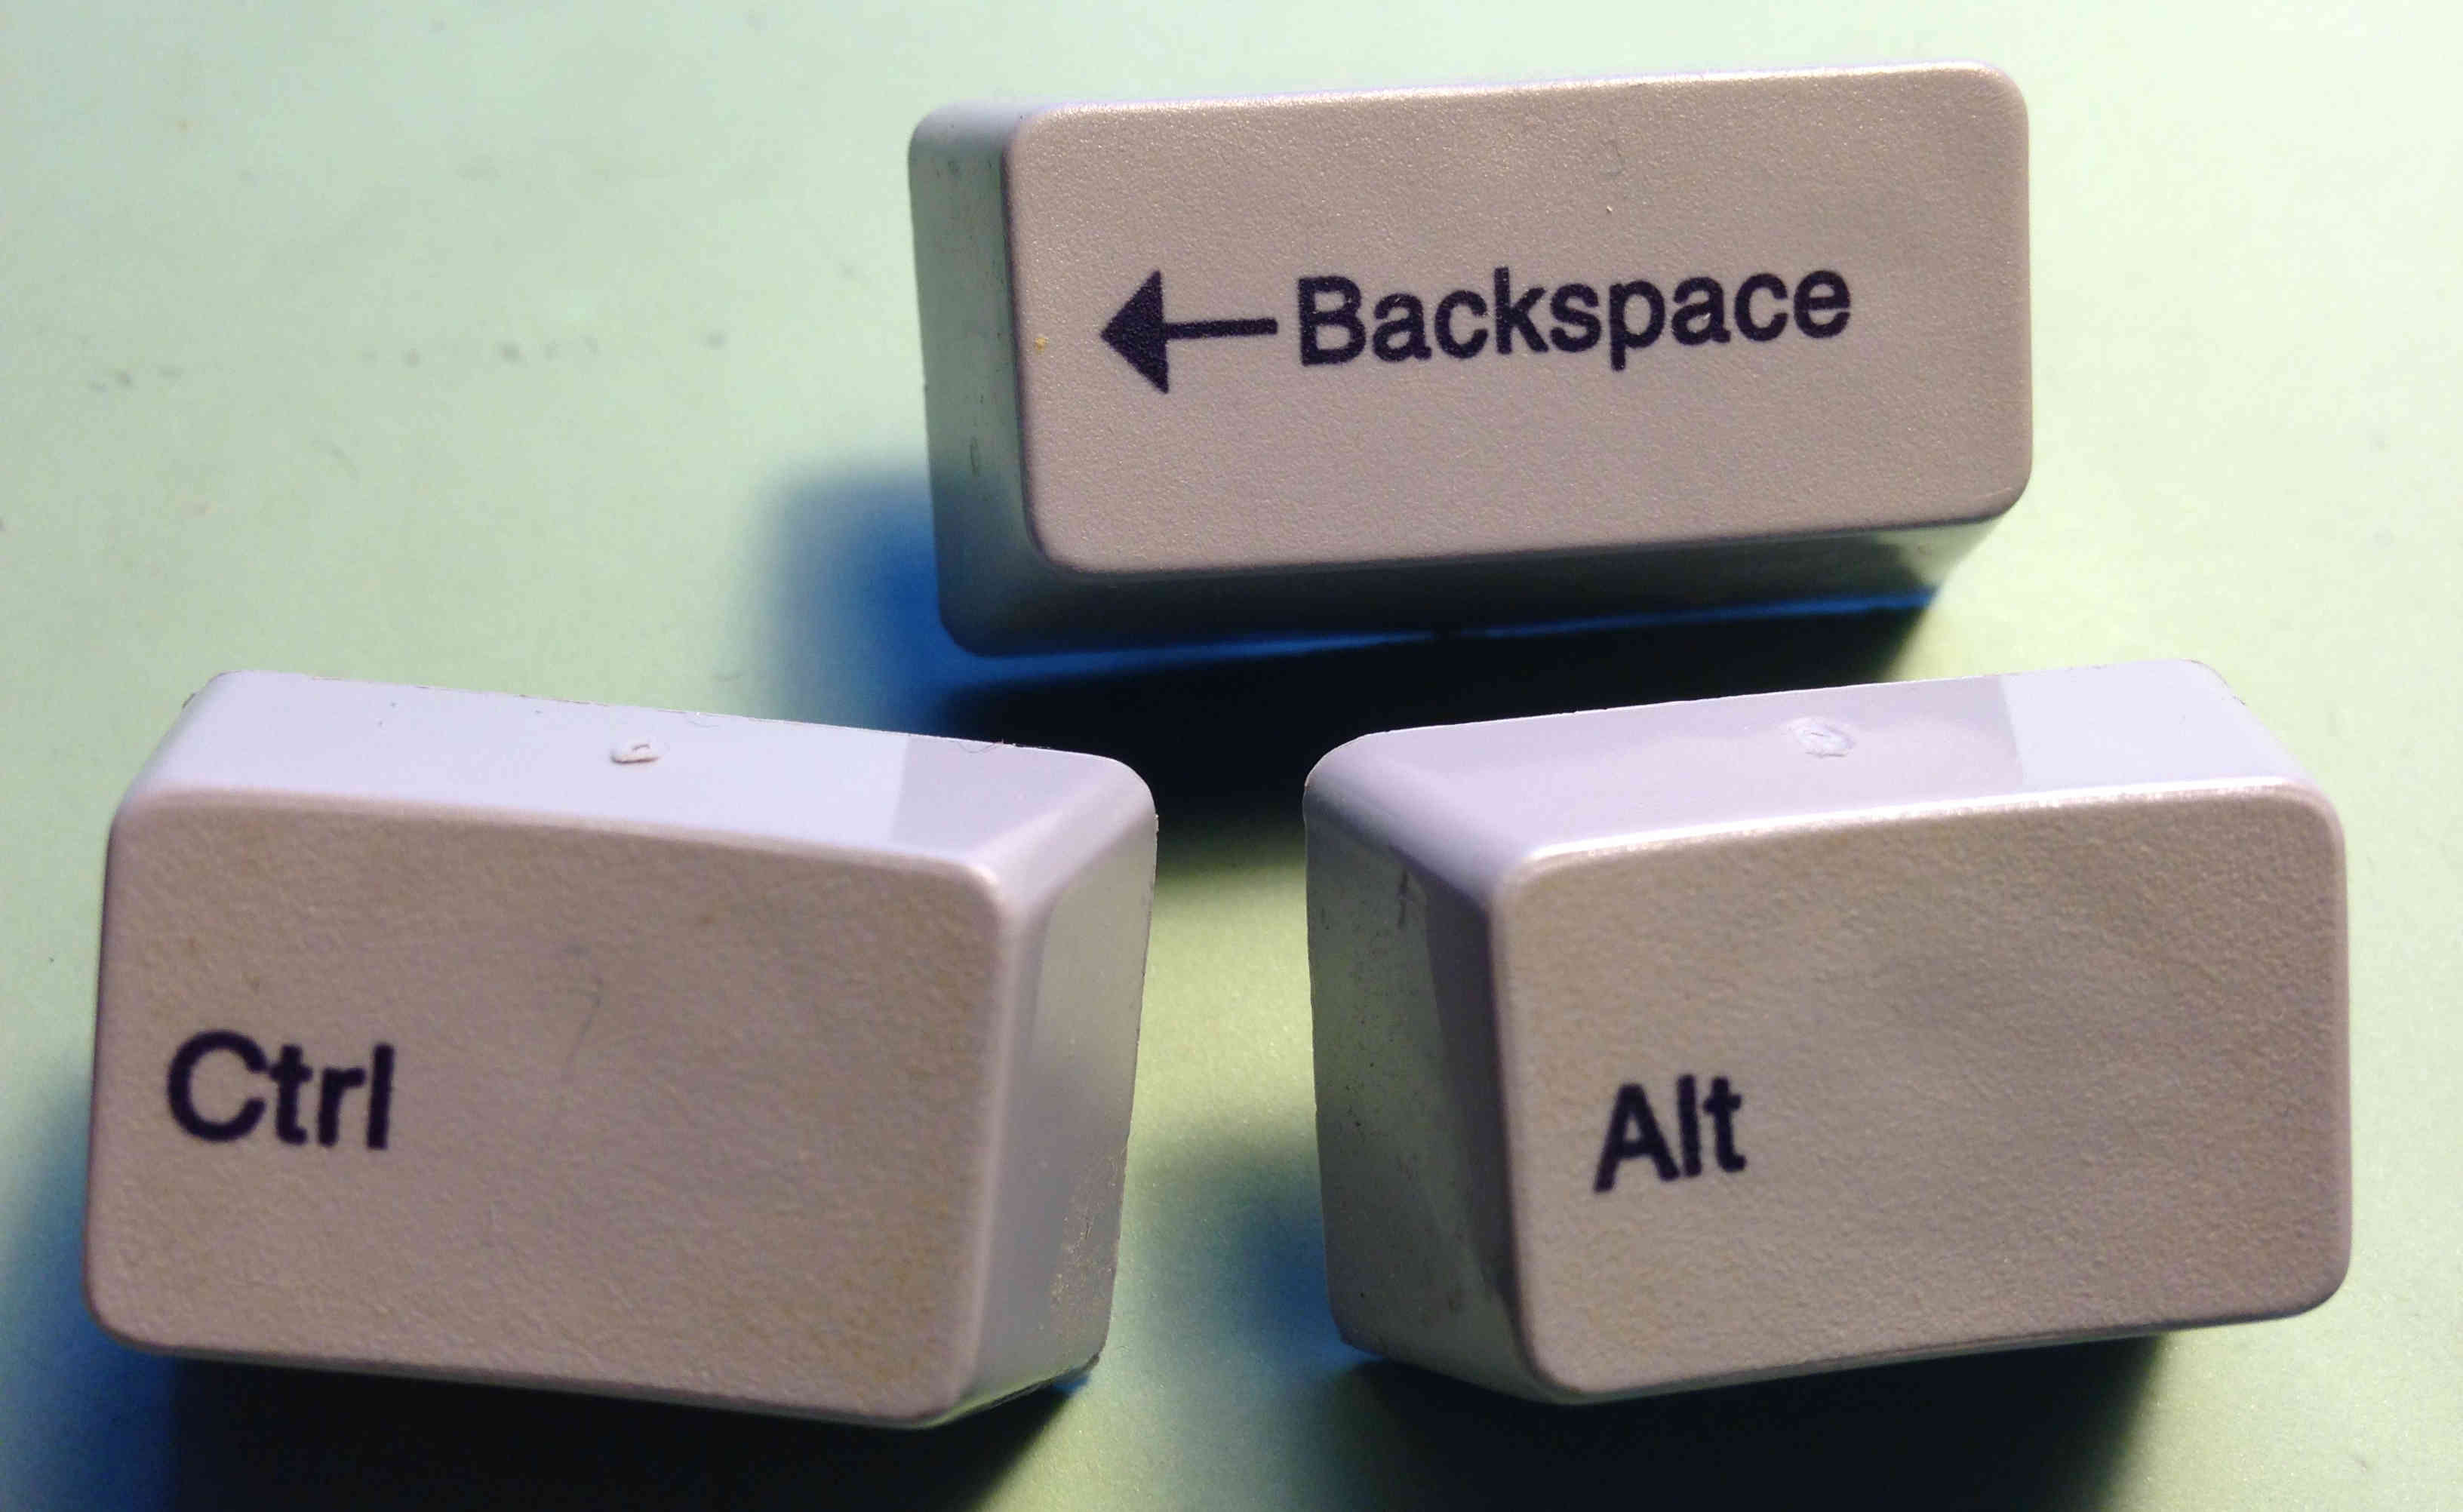 Keys arranged to spell out Control-Alt-Backspace.